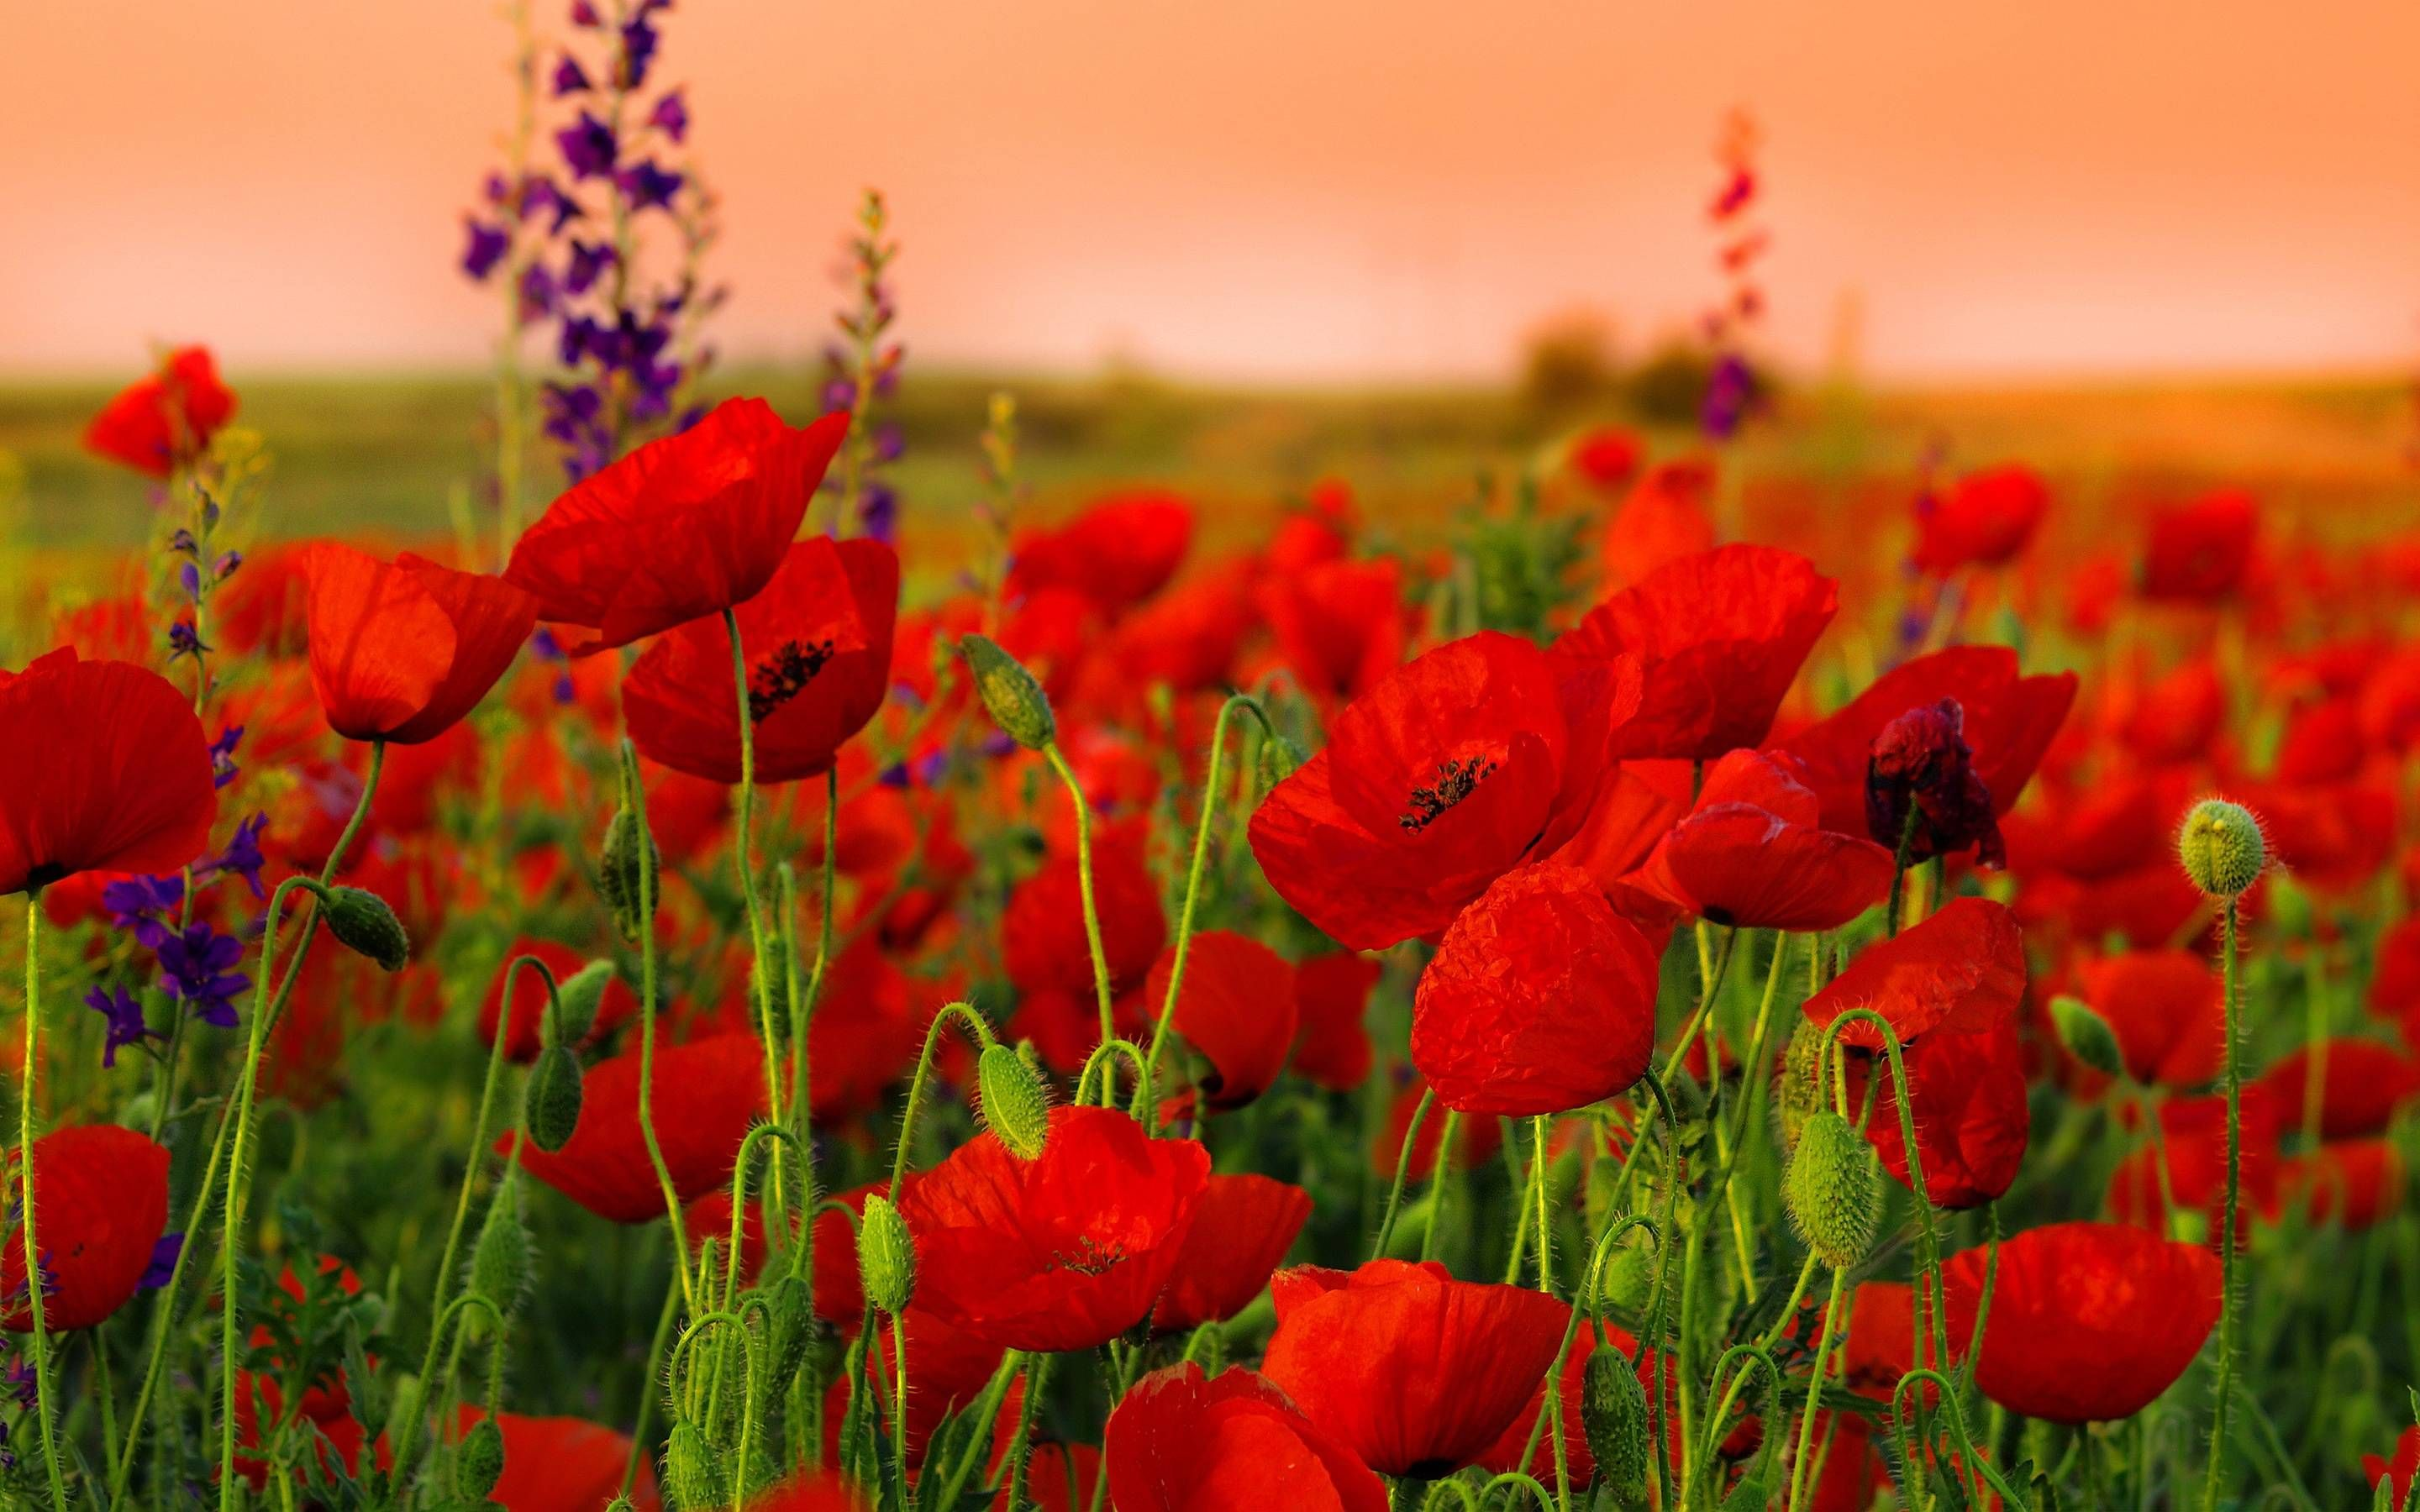 Red poppy wallpapers wallpaper cave beautiful pinterest red poppy wallpapers wallpaper cave mightylinksfo